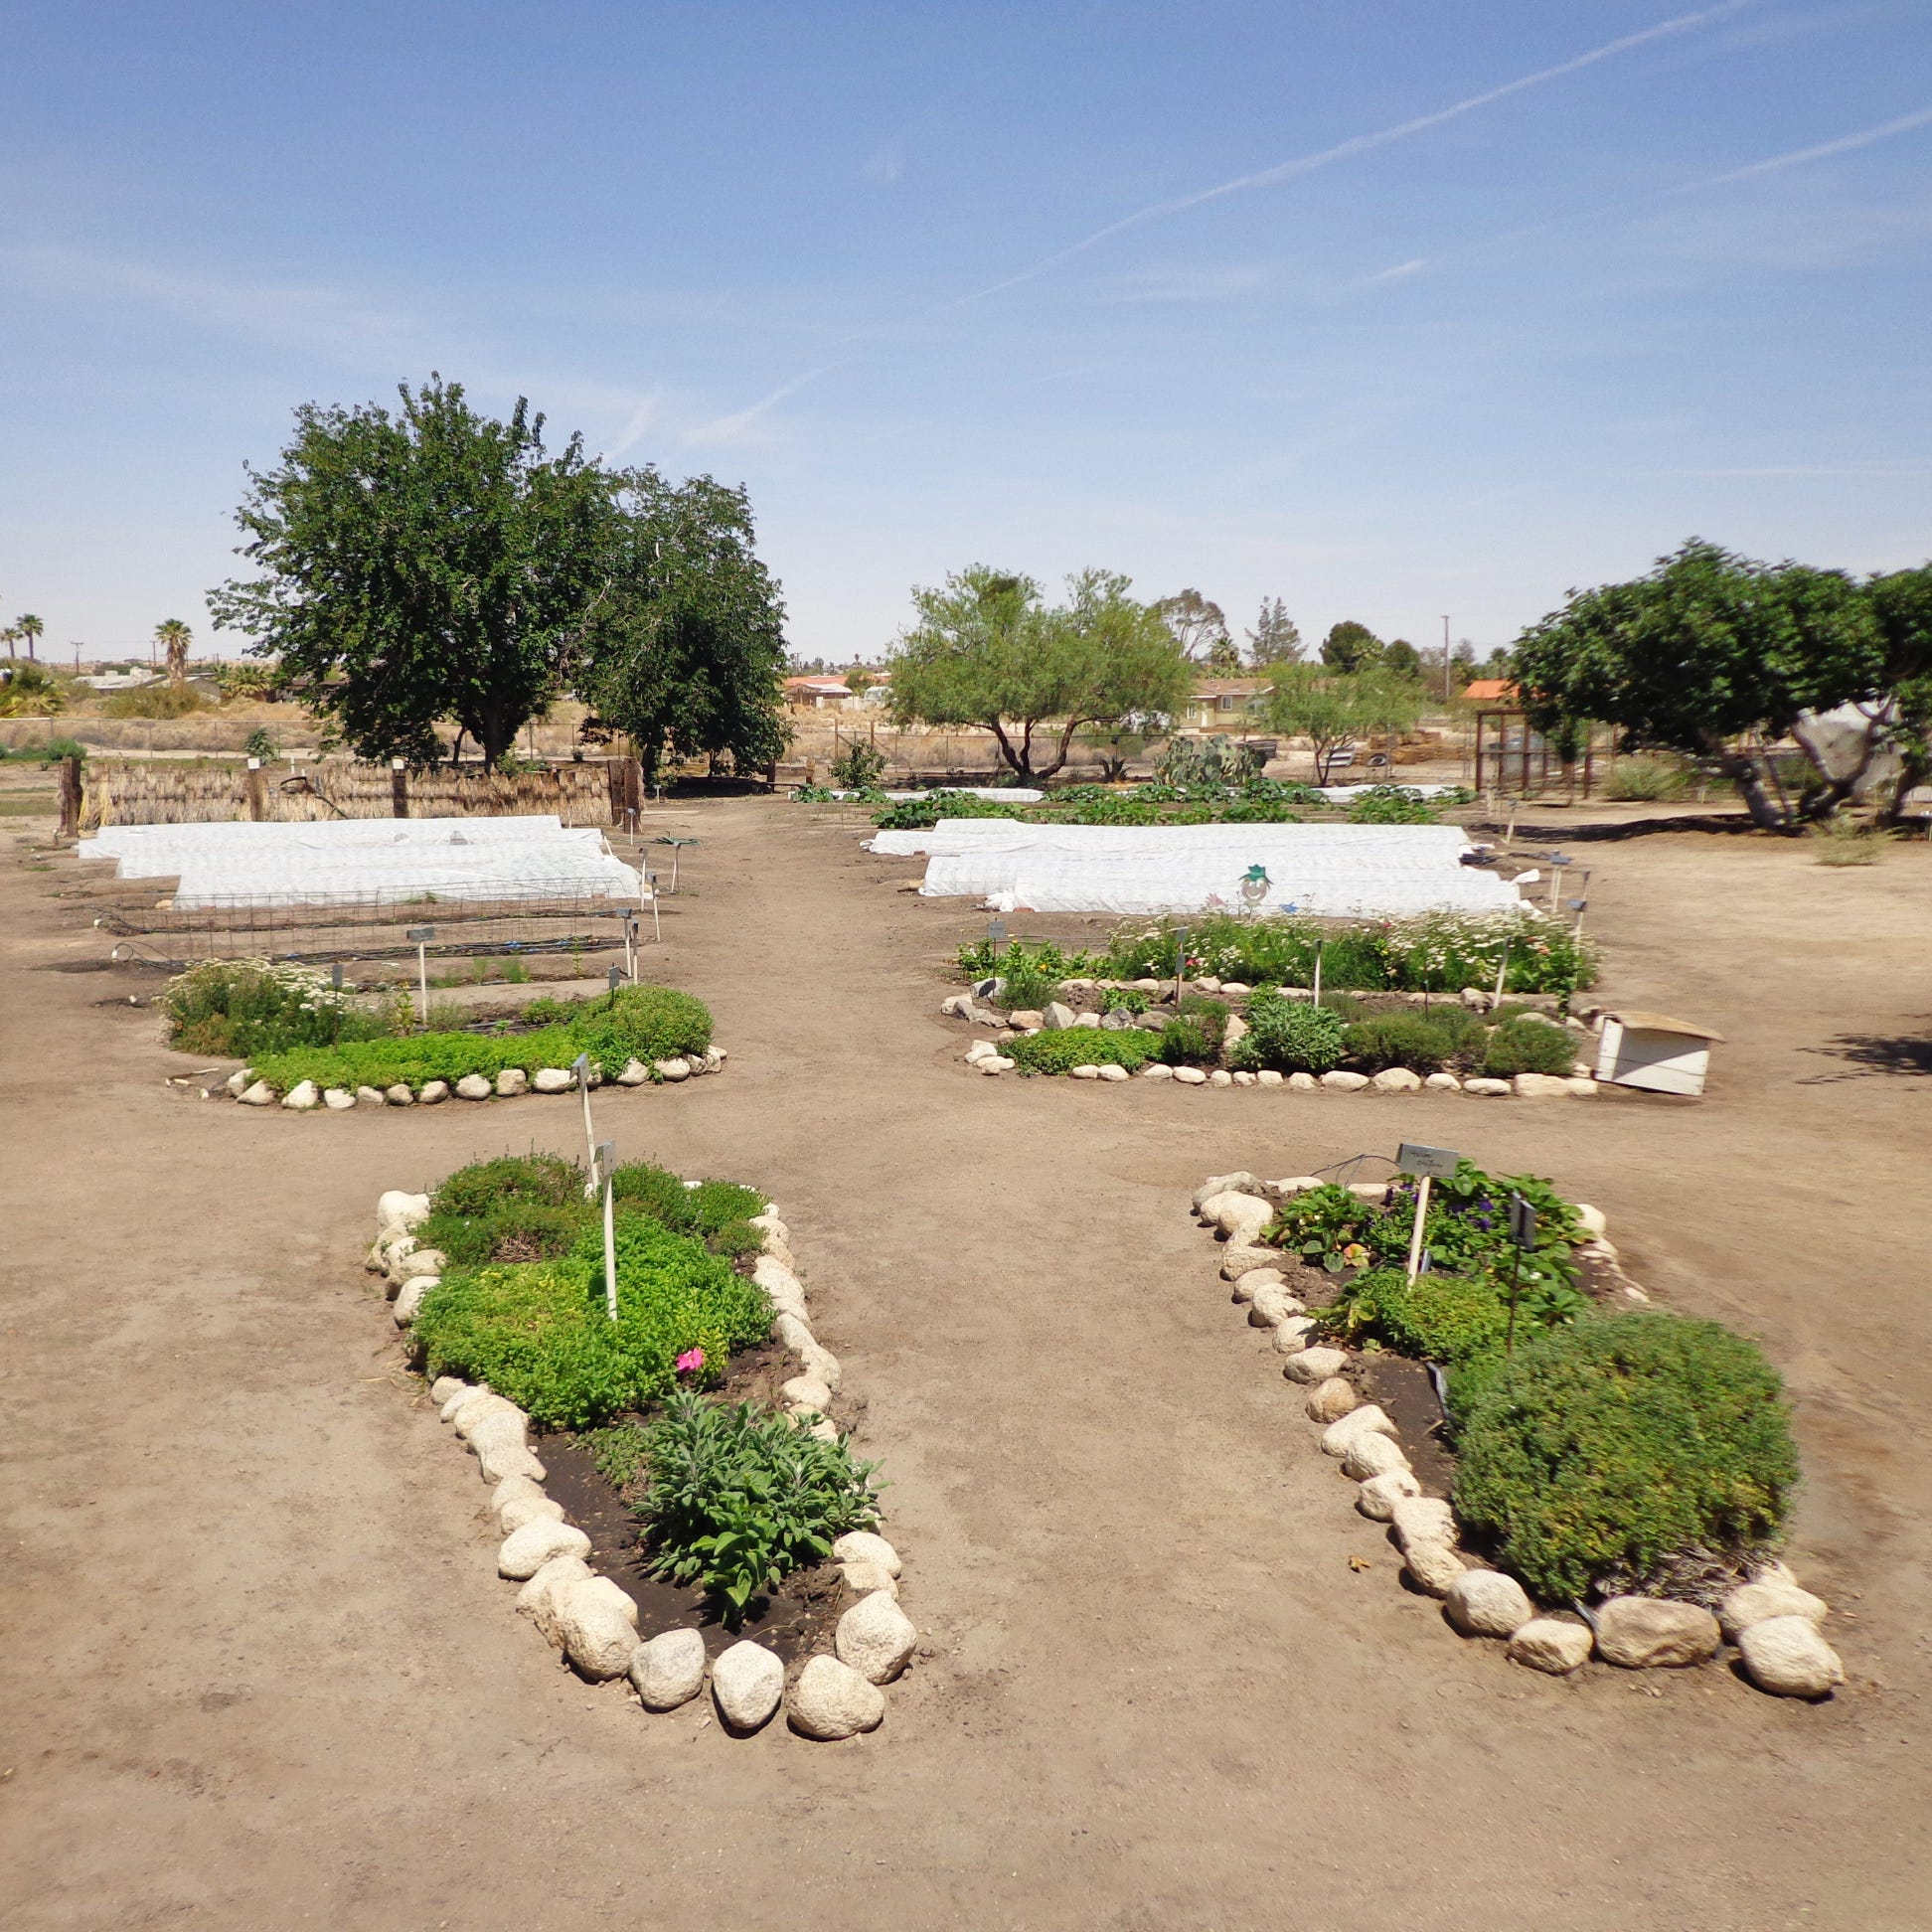 Just minutes from Joshua Tree, this farm is a model for winter vegetable gardens